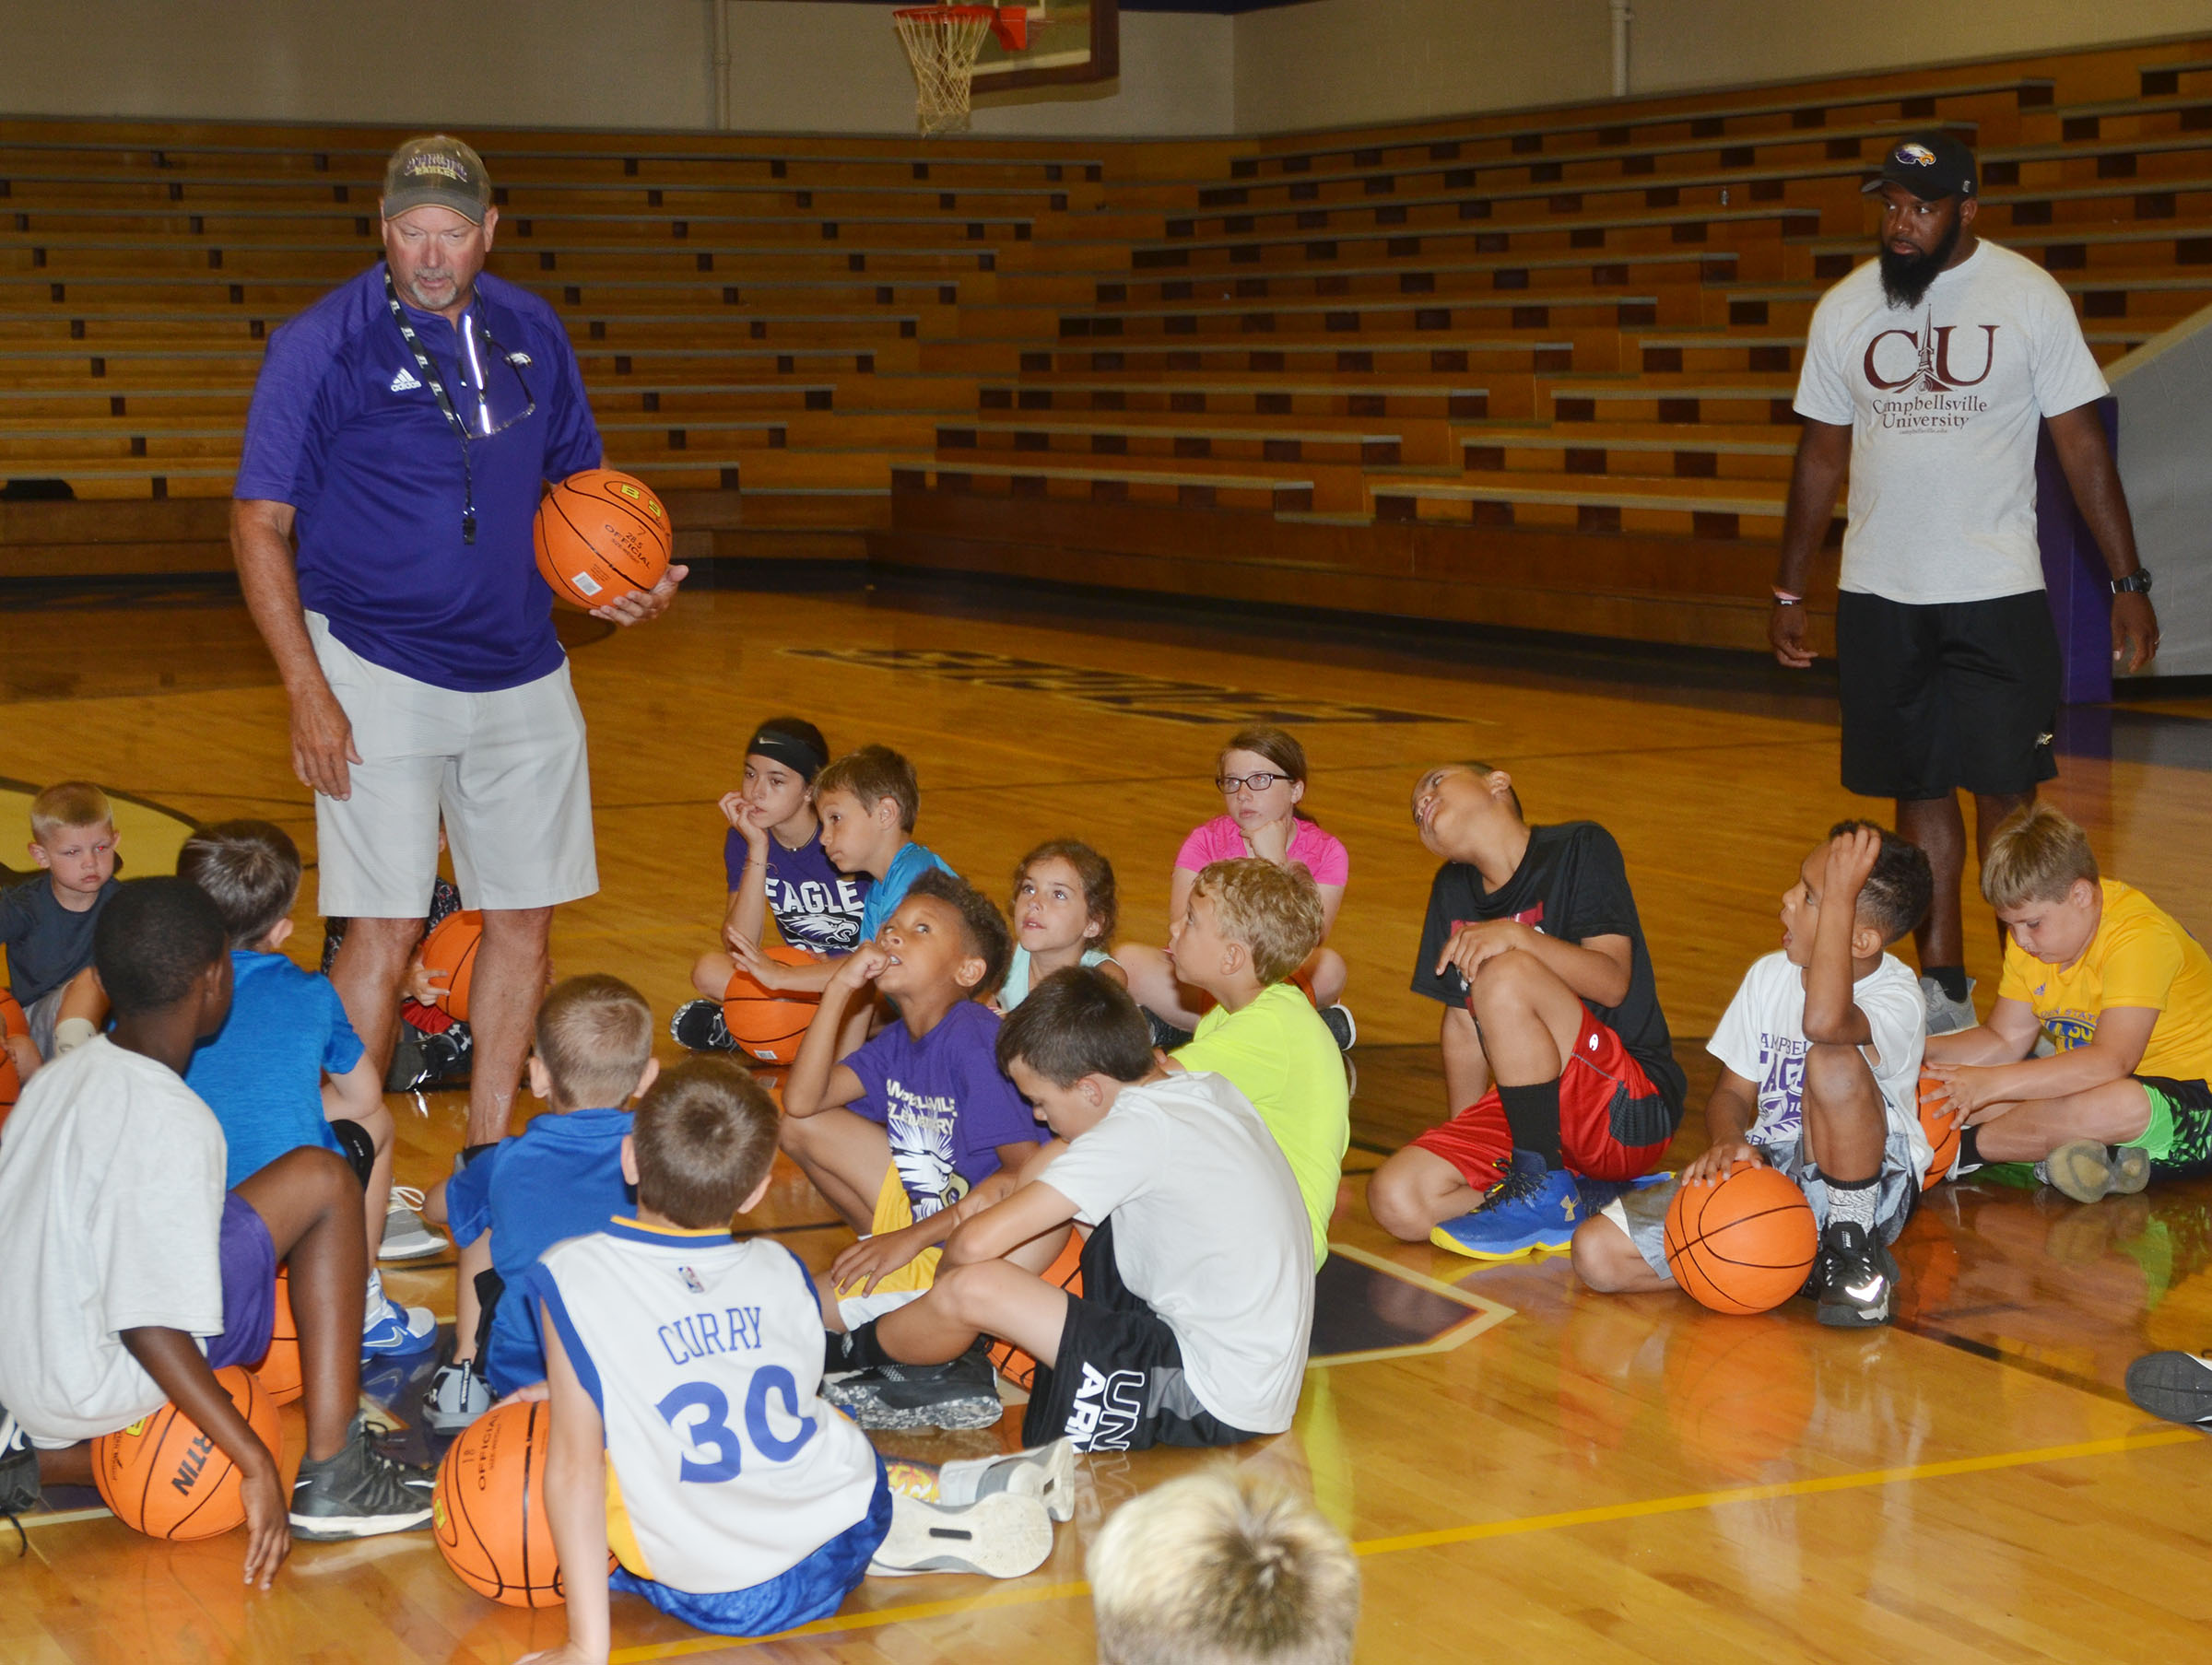 CHS boys' head basketball coach Tim Davis talks to campers.